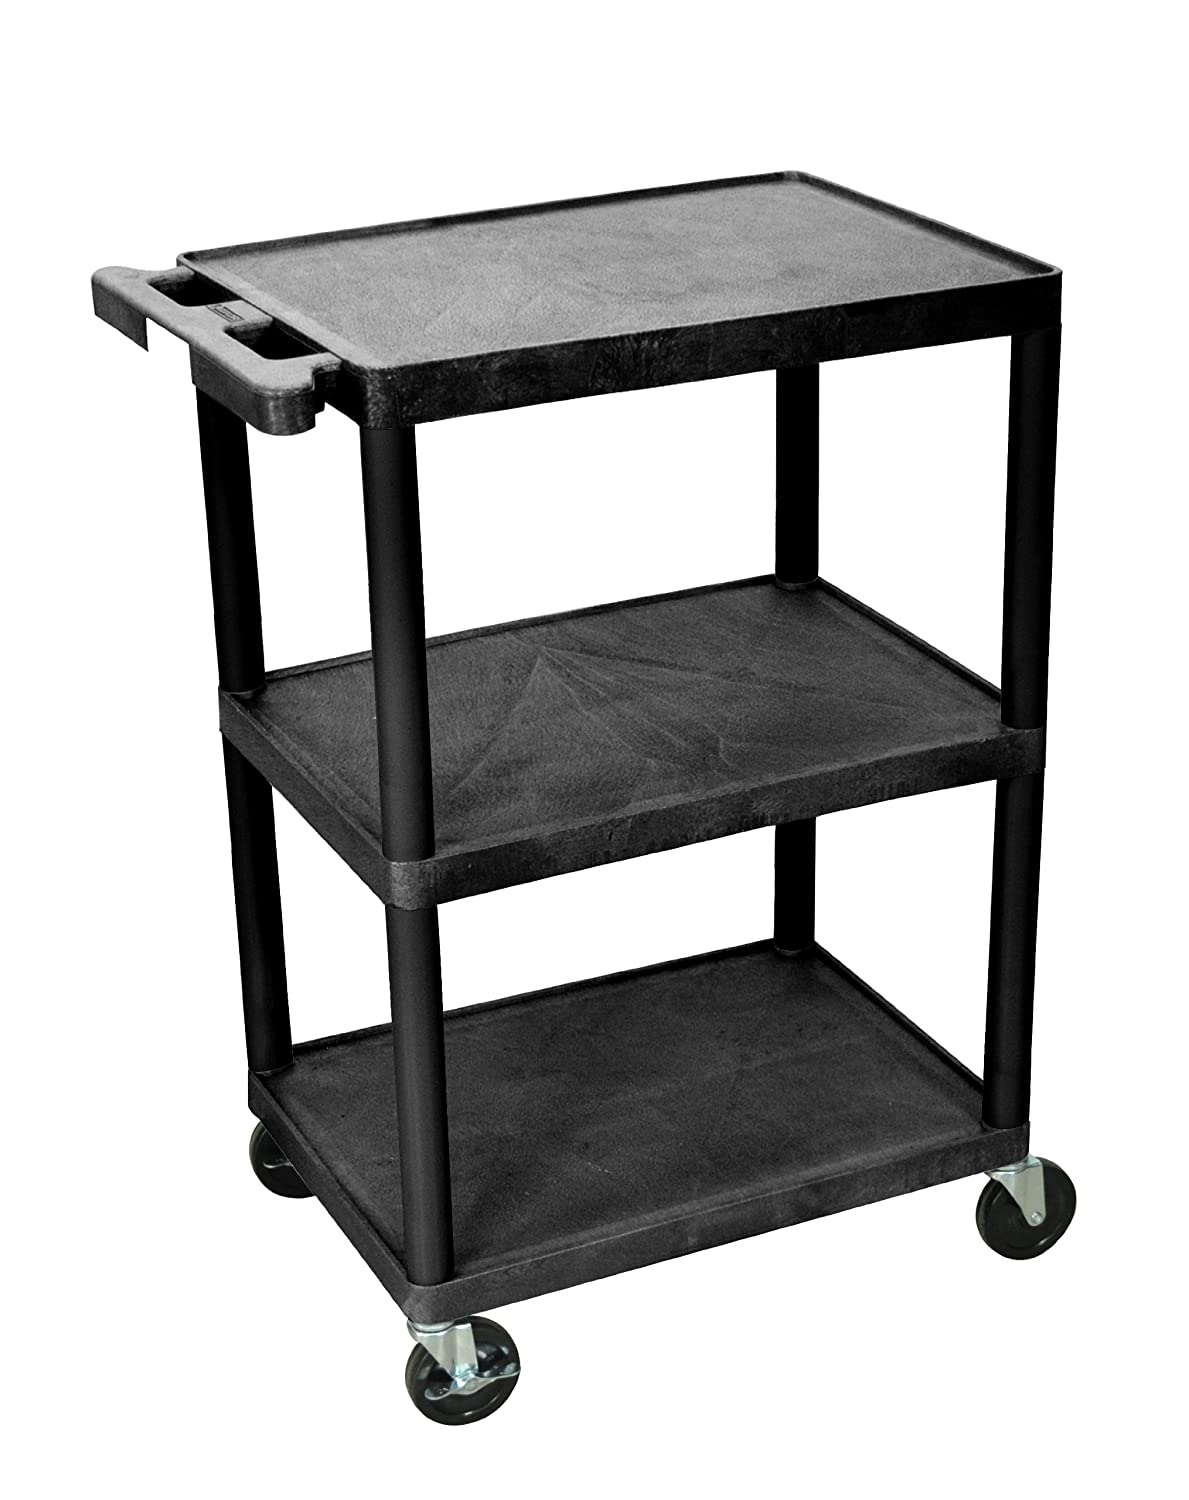 LUXOR HE34-B Transport Cart with 3 Shelves